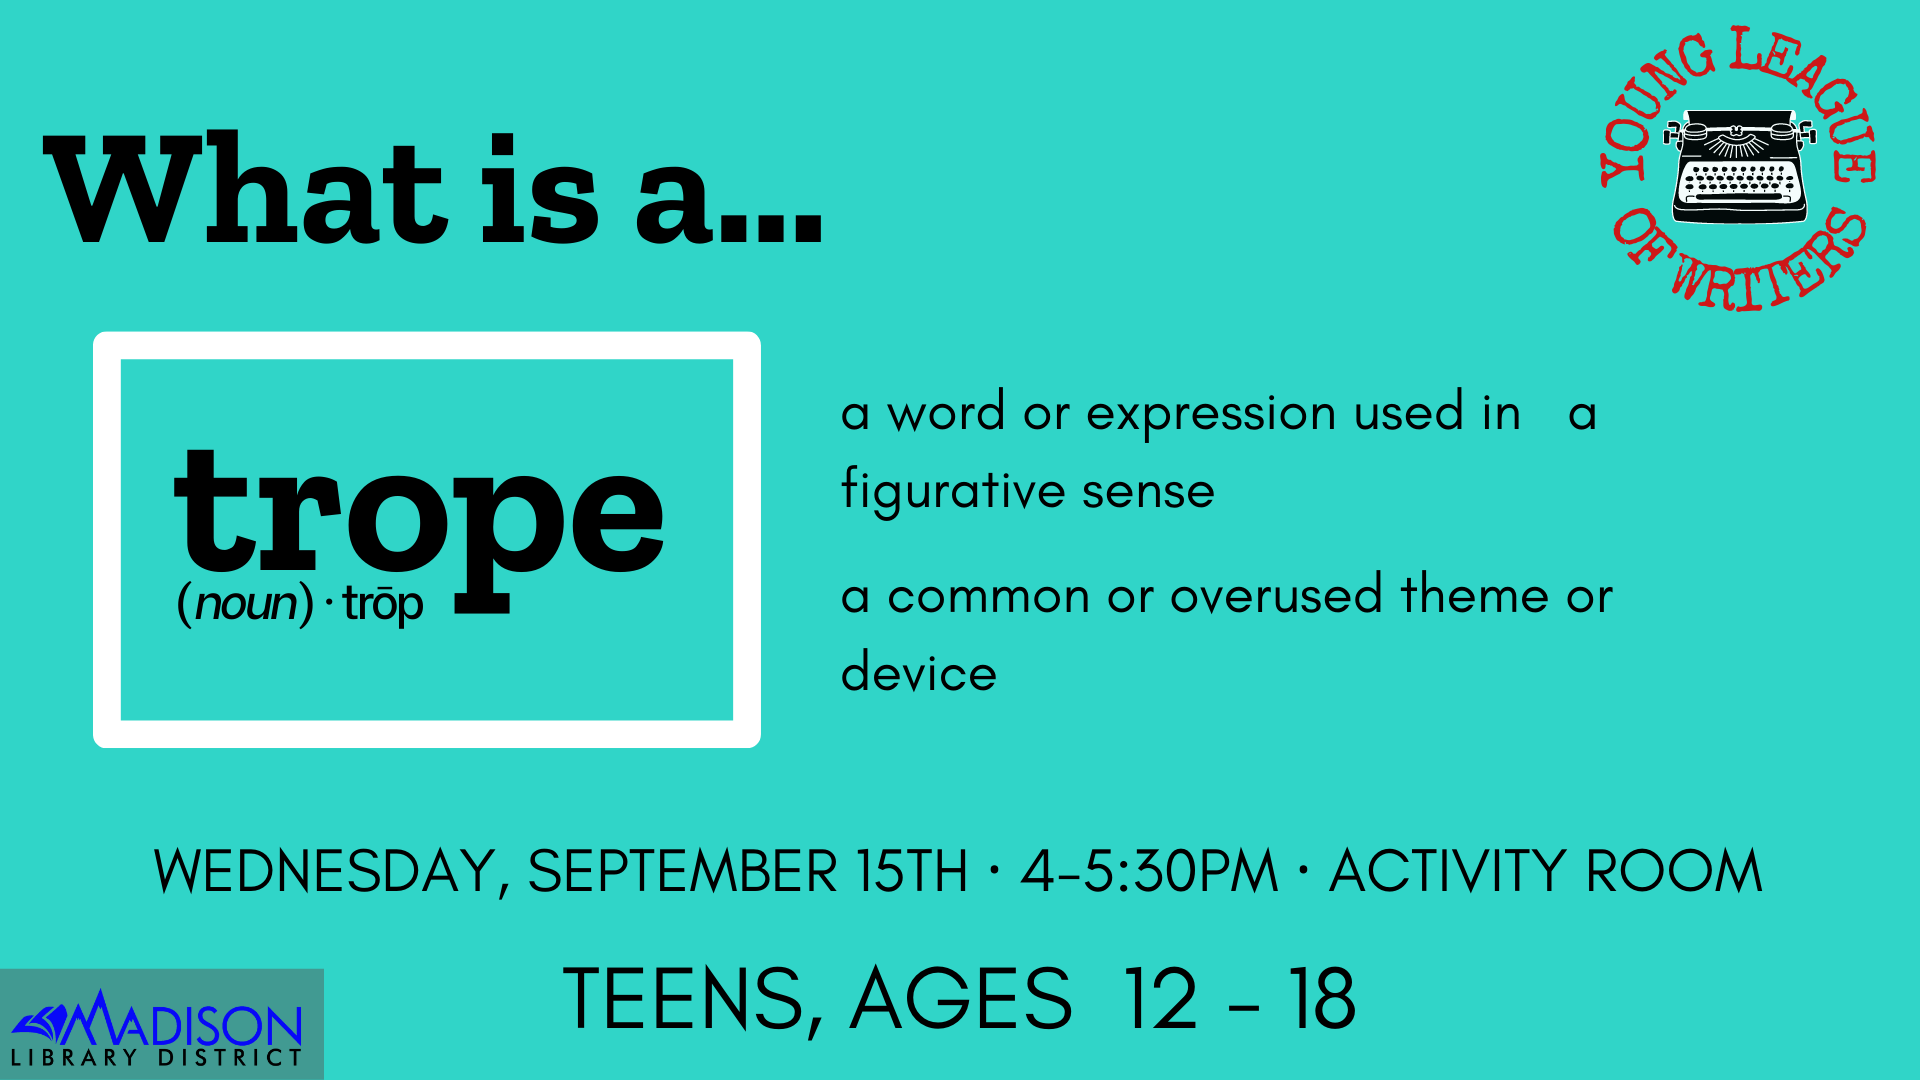 Teen action council have a say in what goes on at the library for teens